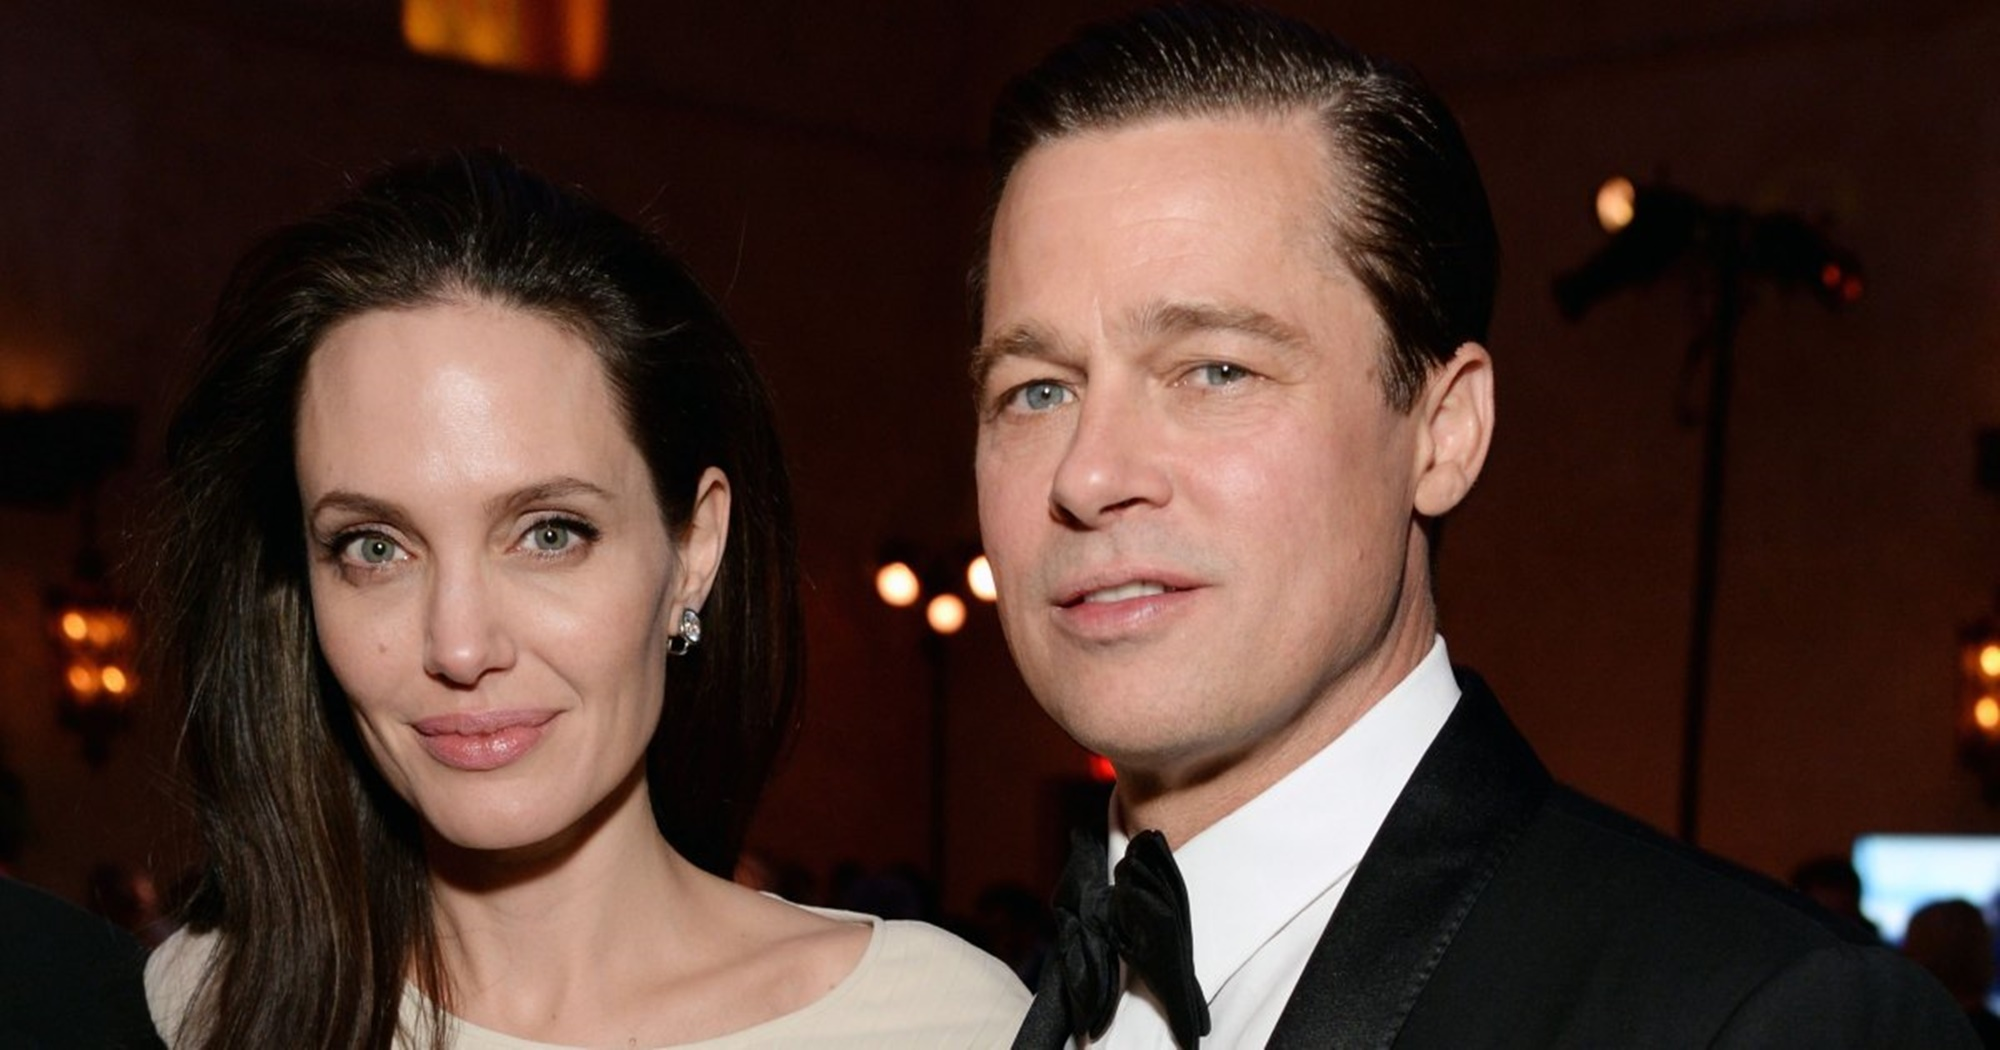 challenging-divorce-from-brad-pitt-makes-it-unlikely-that-angelina-jolie-will-ever-get-married-again